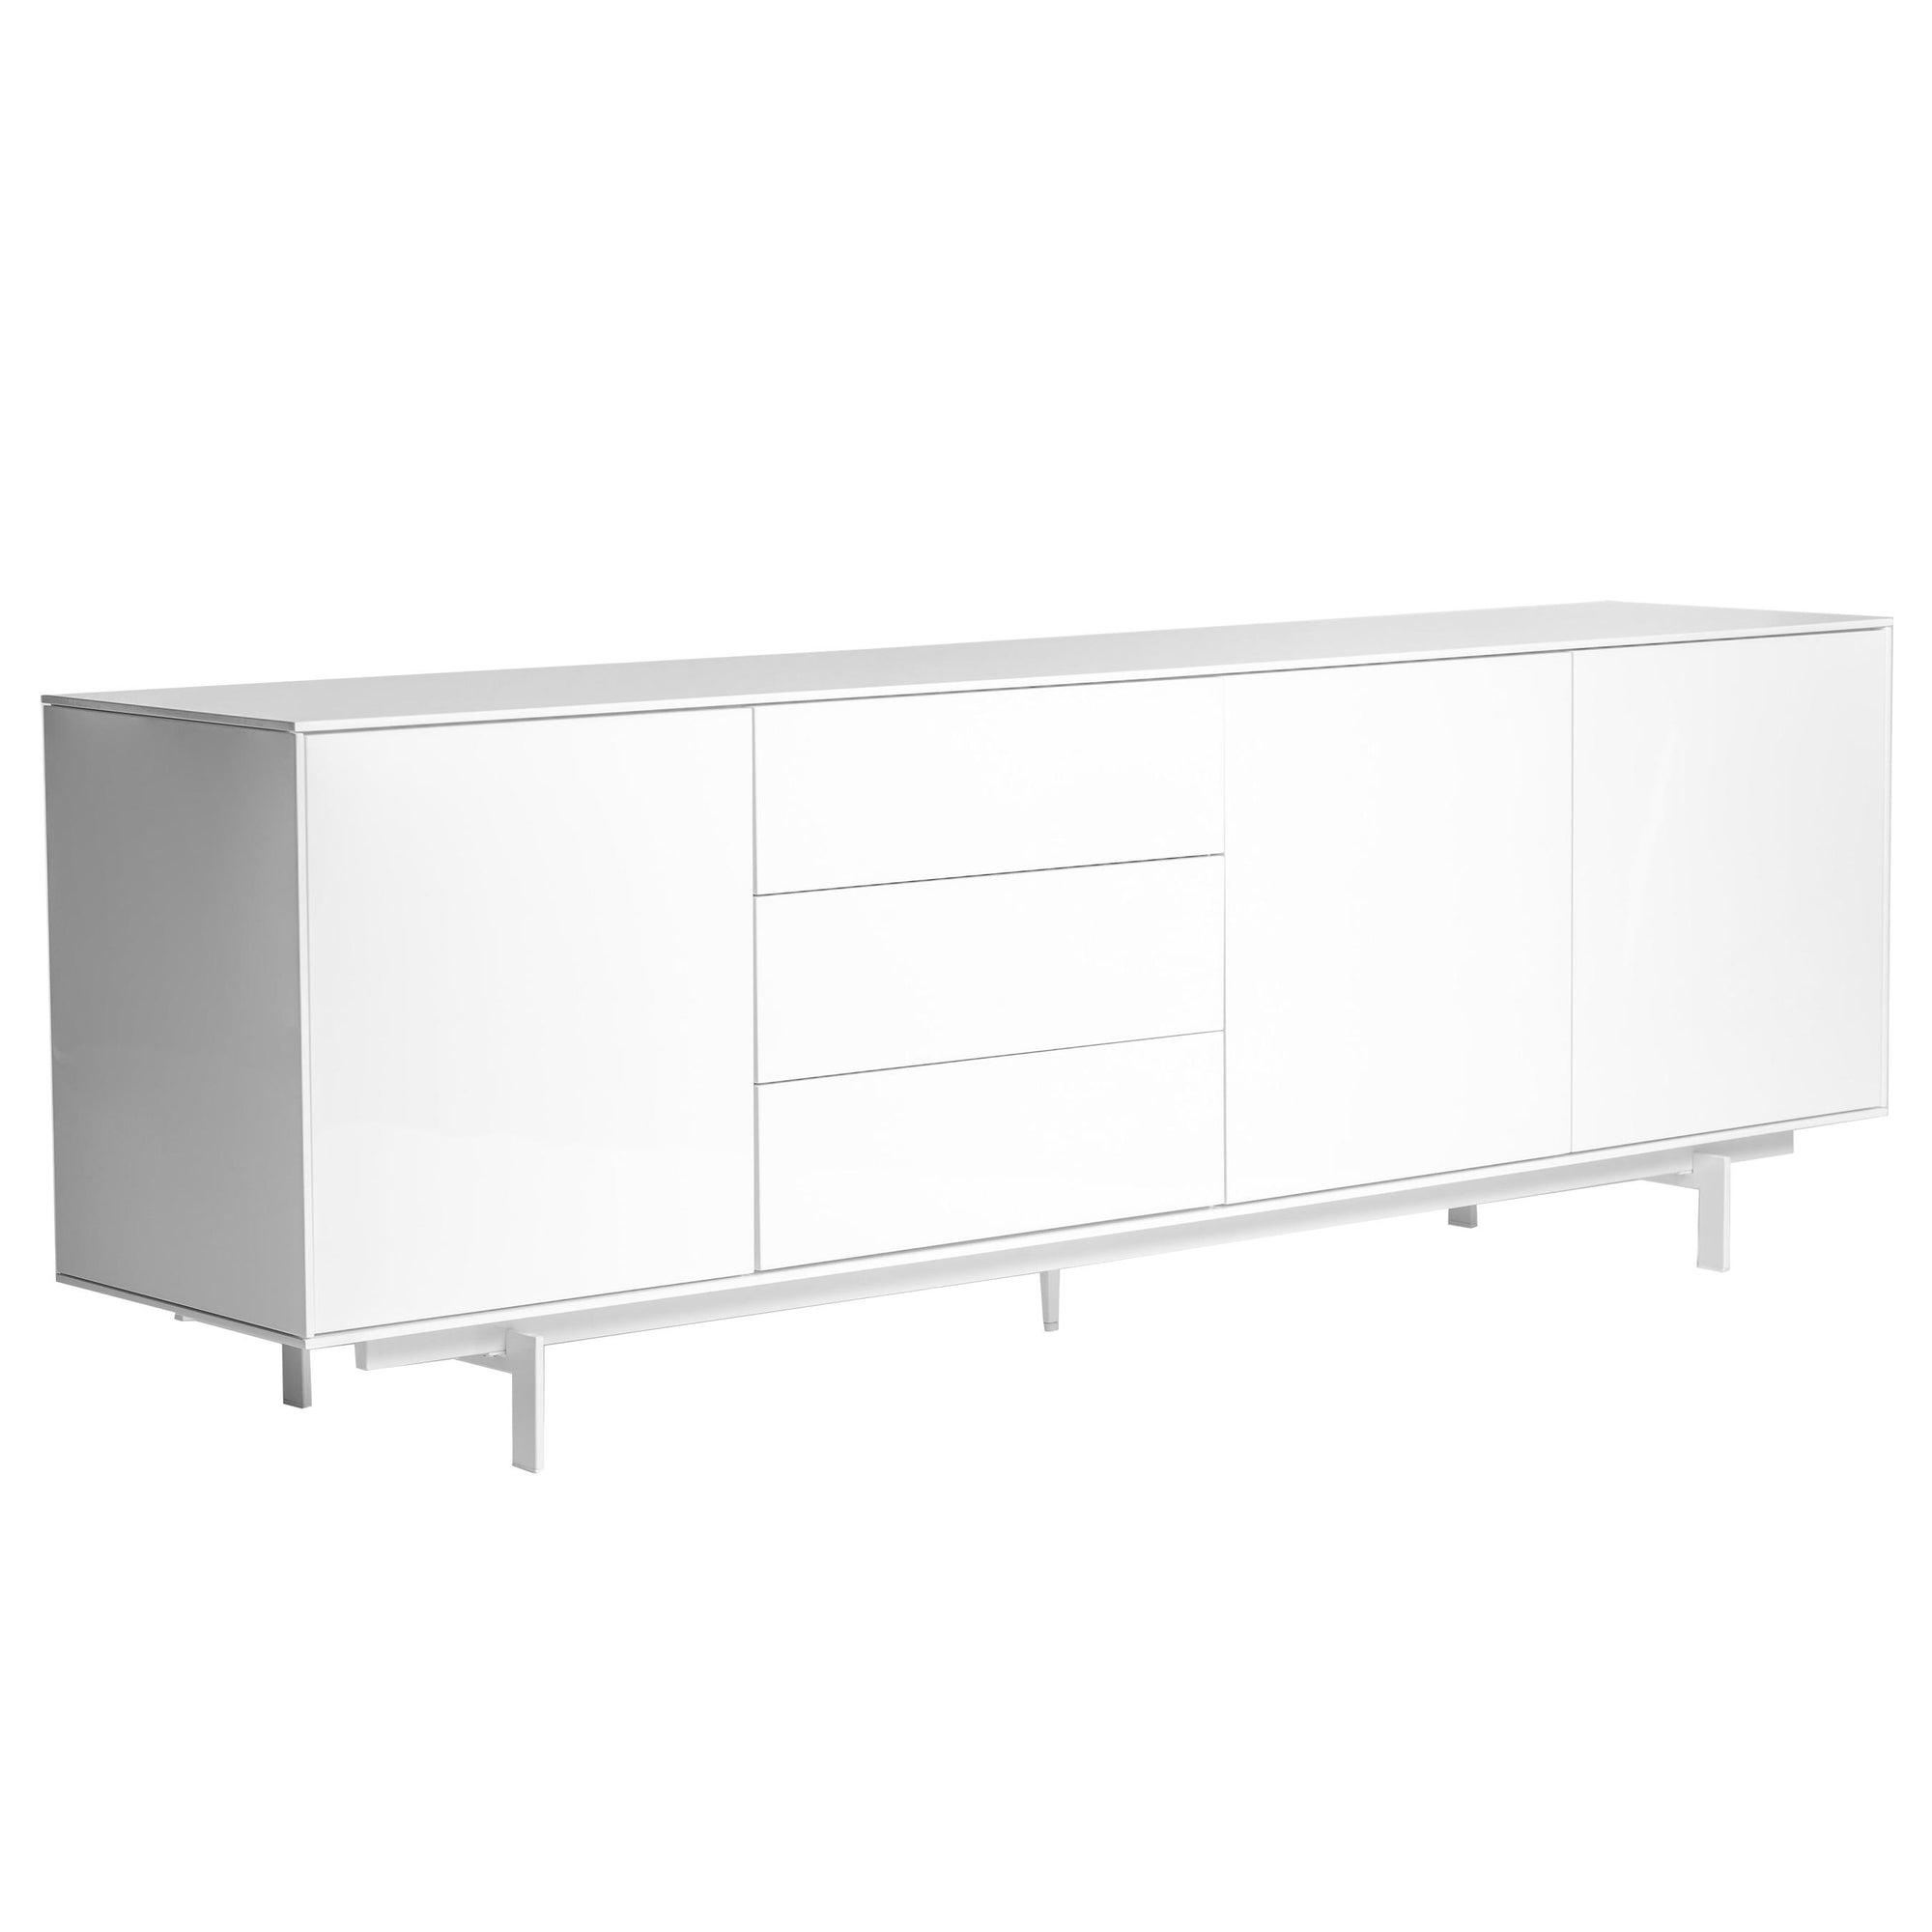 White office credenza Modern Gorgeous Office Credenza W White Lacquer Officedeskcom Gorgeous Office Credenza W White Lacquer Officedeskcom